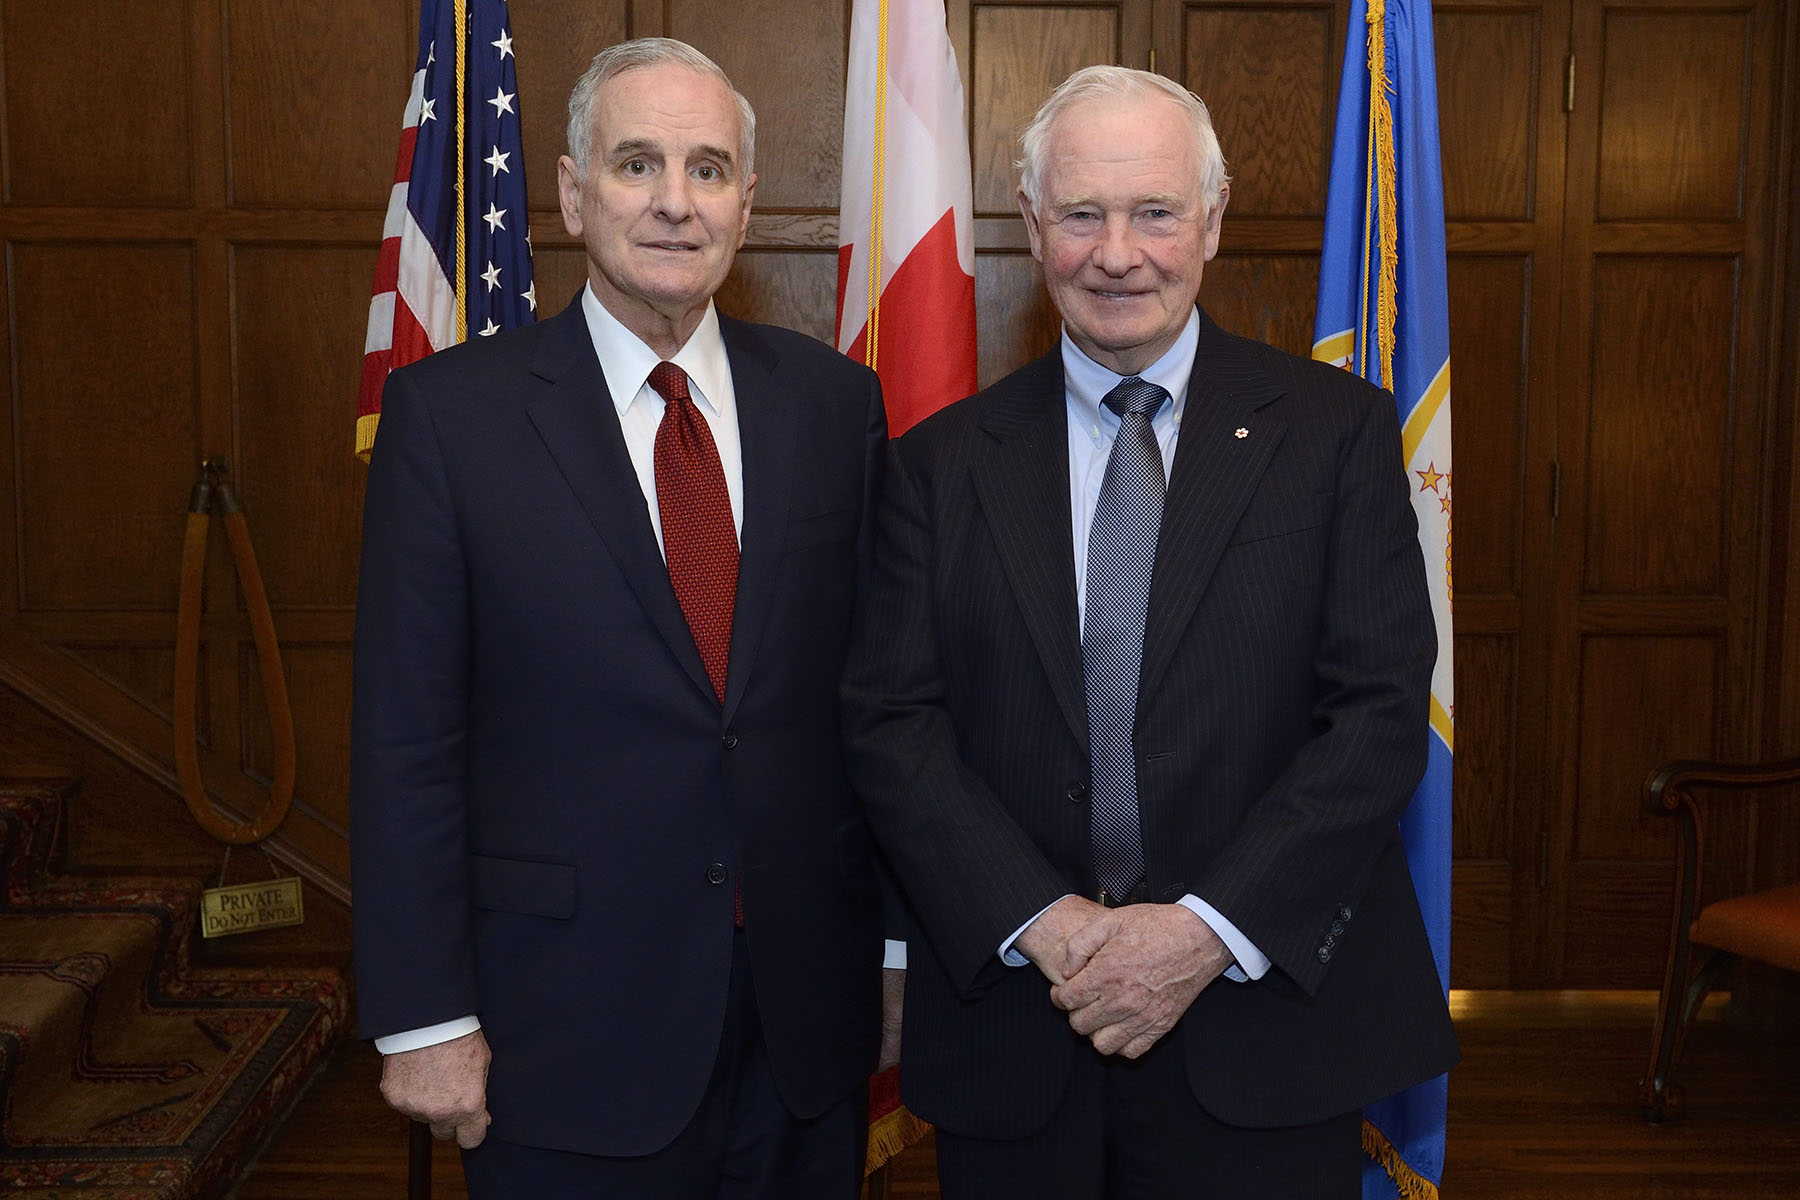 On April 27, 2015, His Excellency the Right Honourable David Johnston, Governor General of Canada, met with the Honourable Mark Dayton, Governor of Minnesota, to discuss the strong, multi-faceted relationship between Canada and Minnesota.